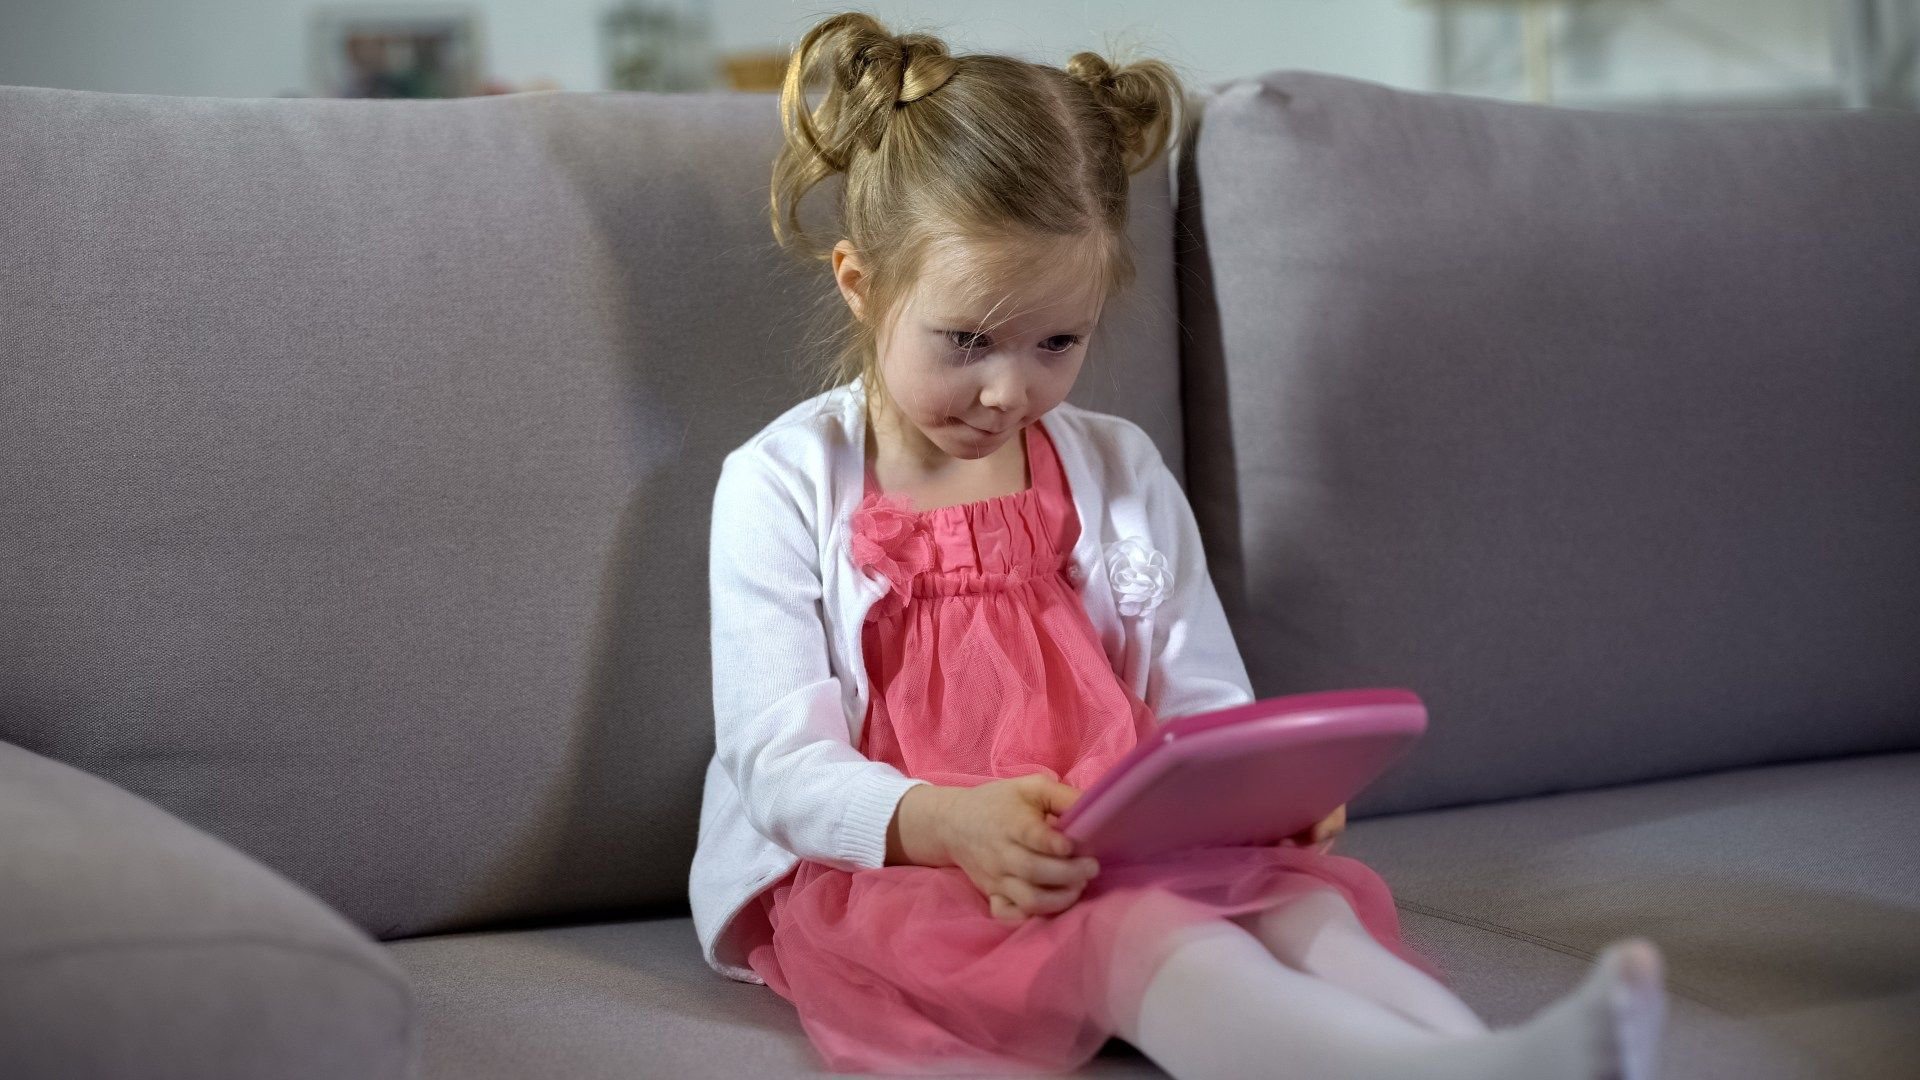 Best educational apps for 5year olds Fun, safe